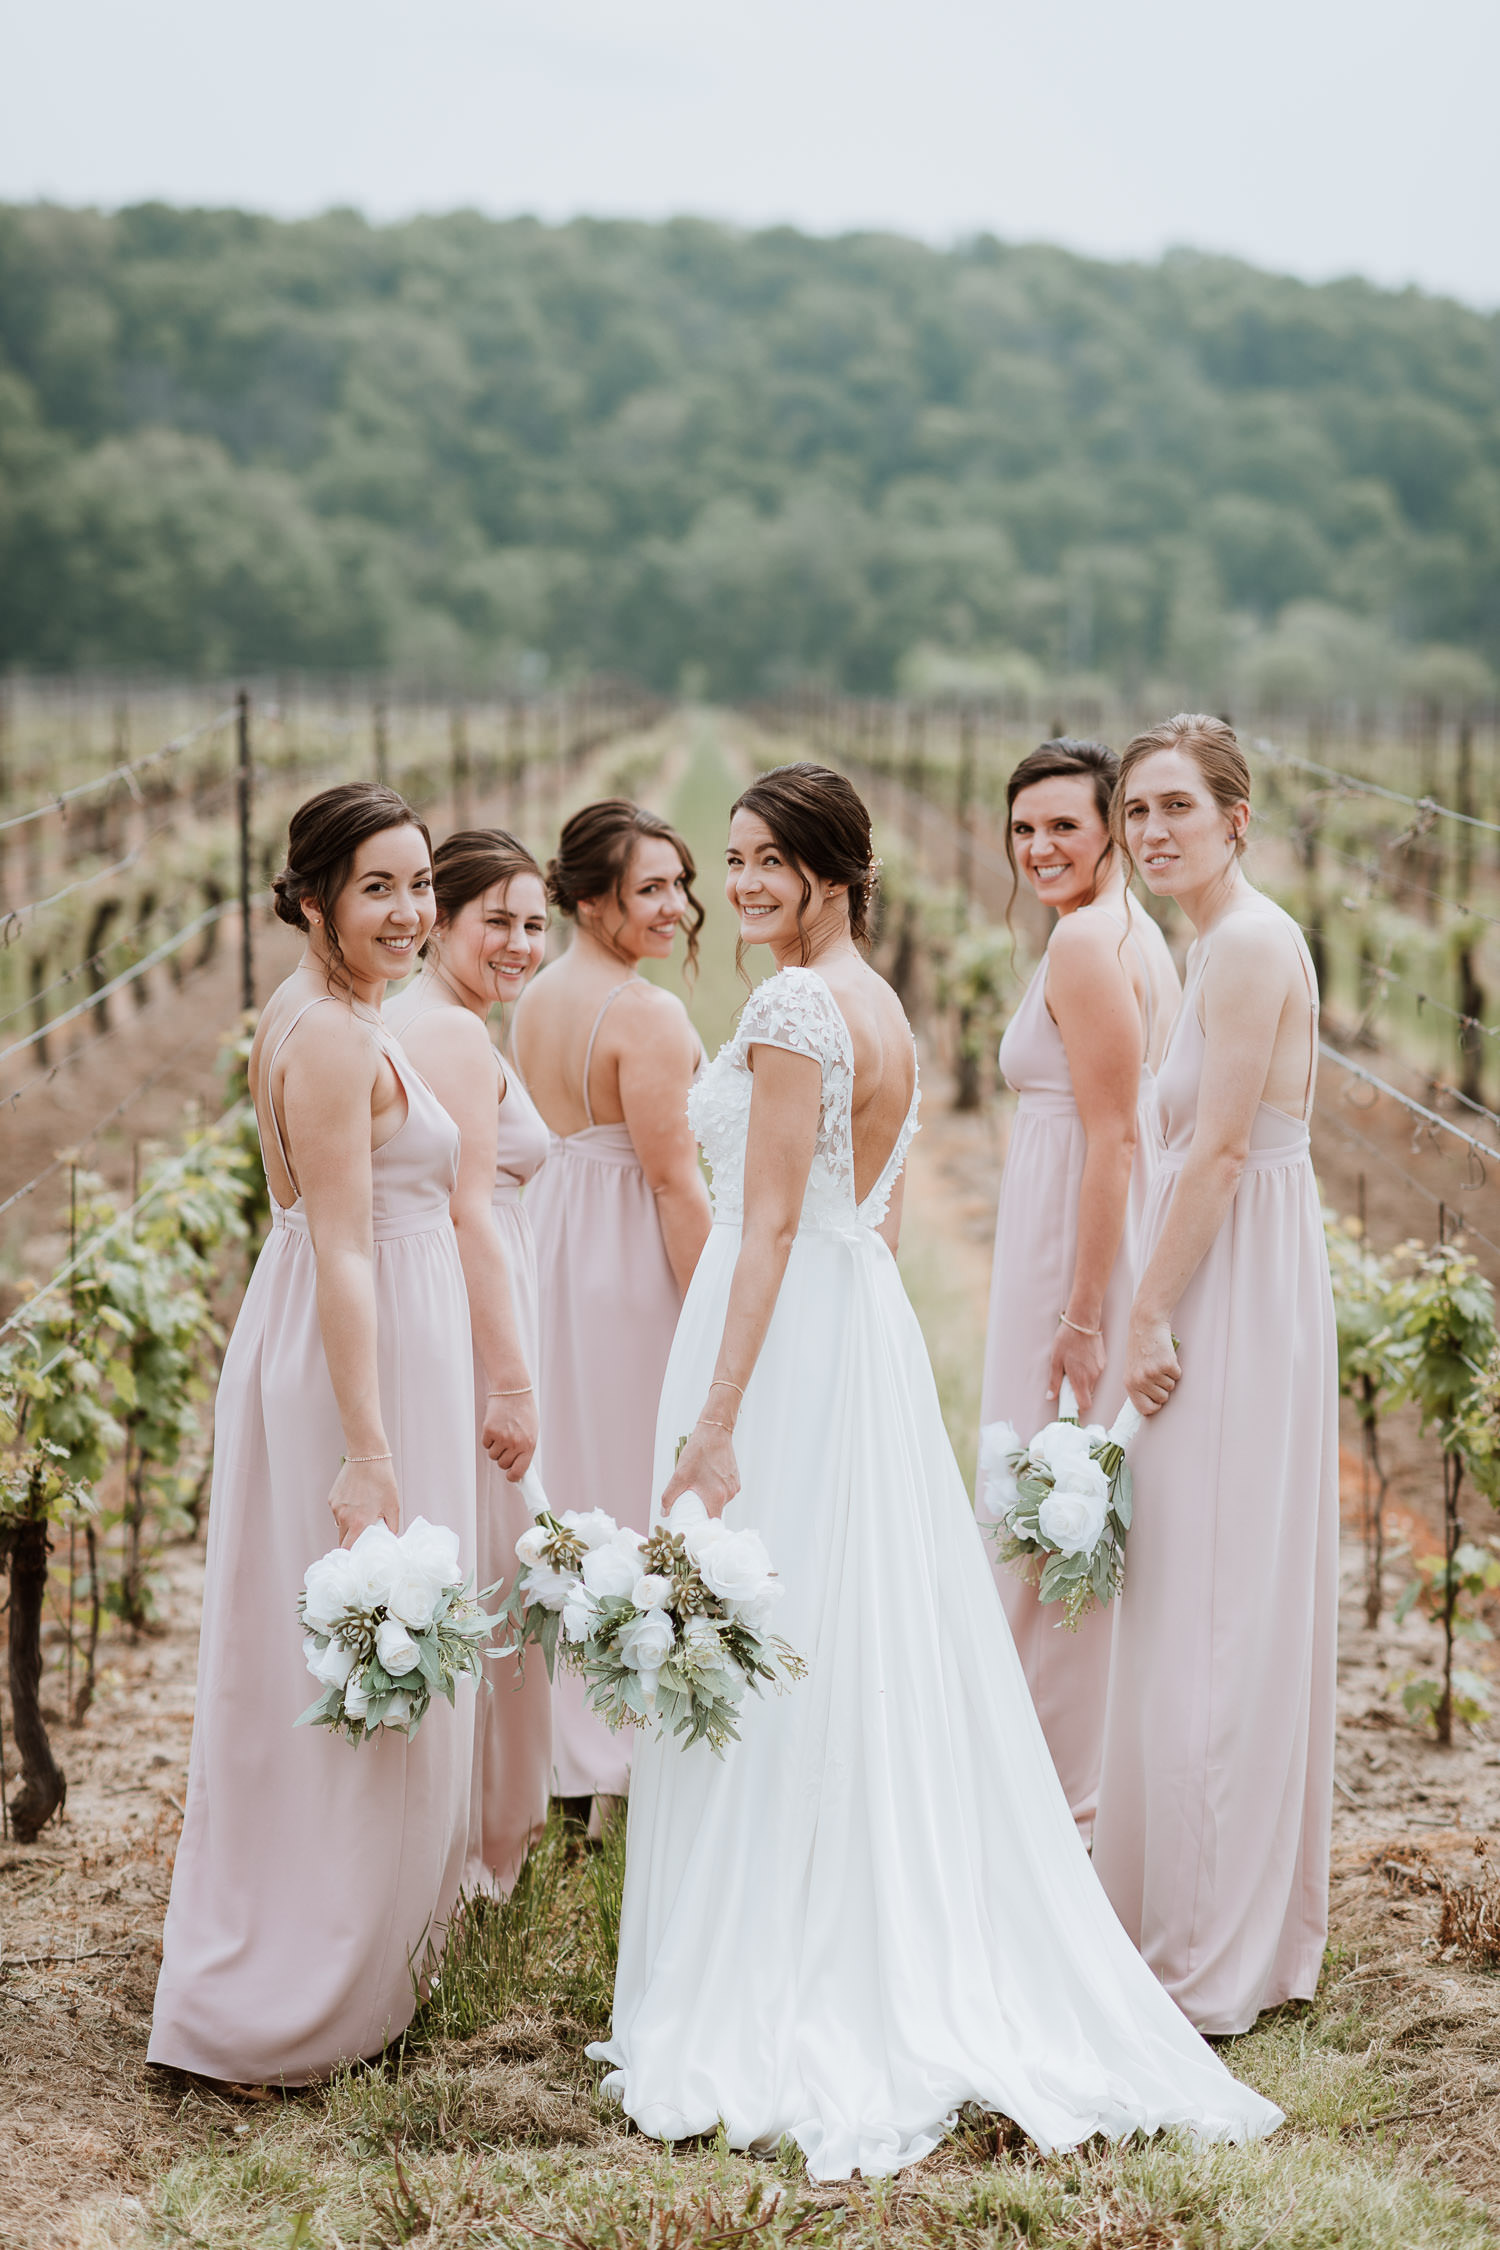 Cave Spring Vineyard Bridesmaids Photo